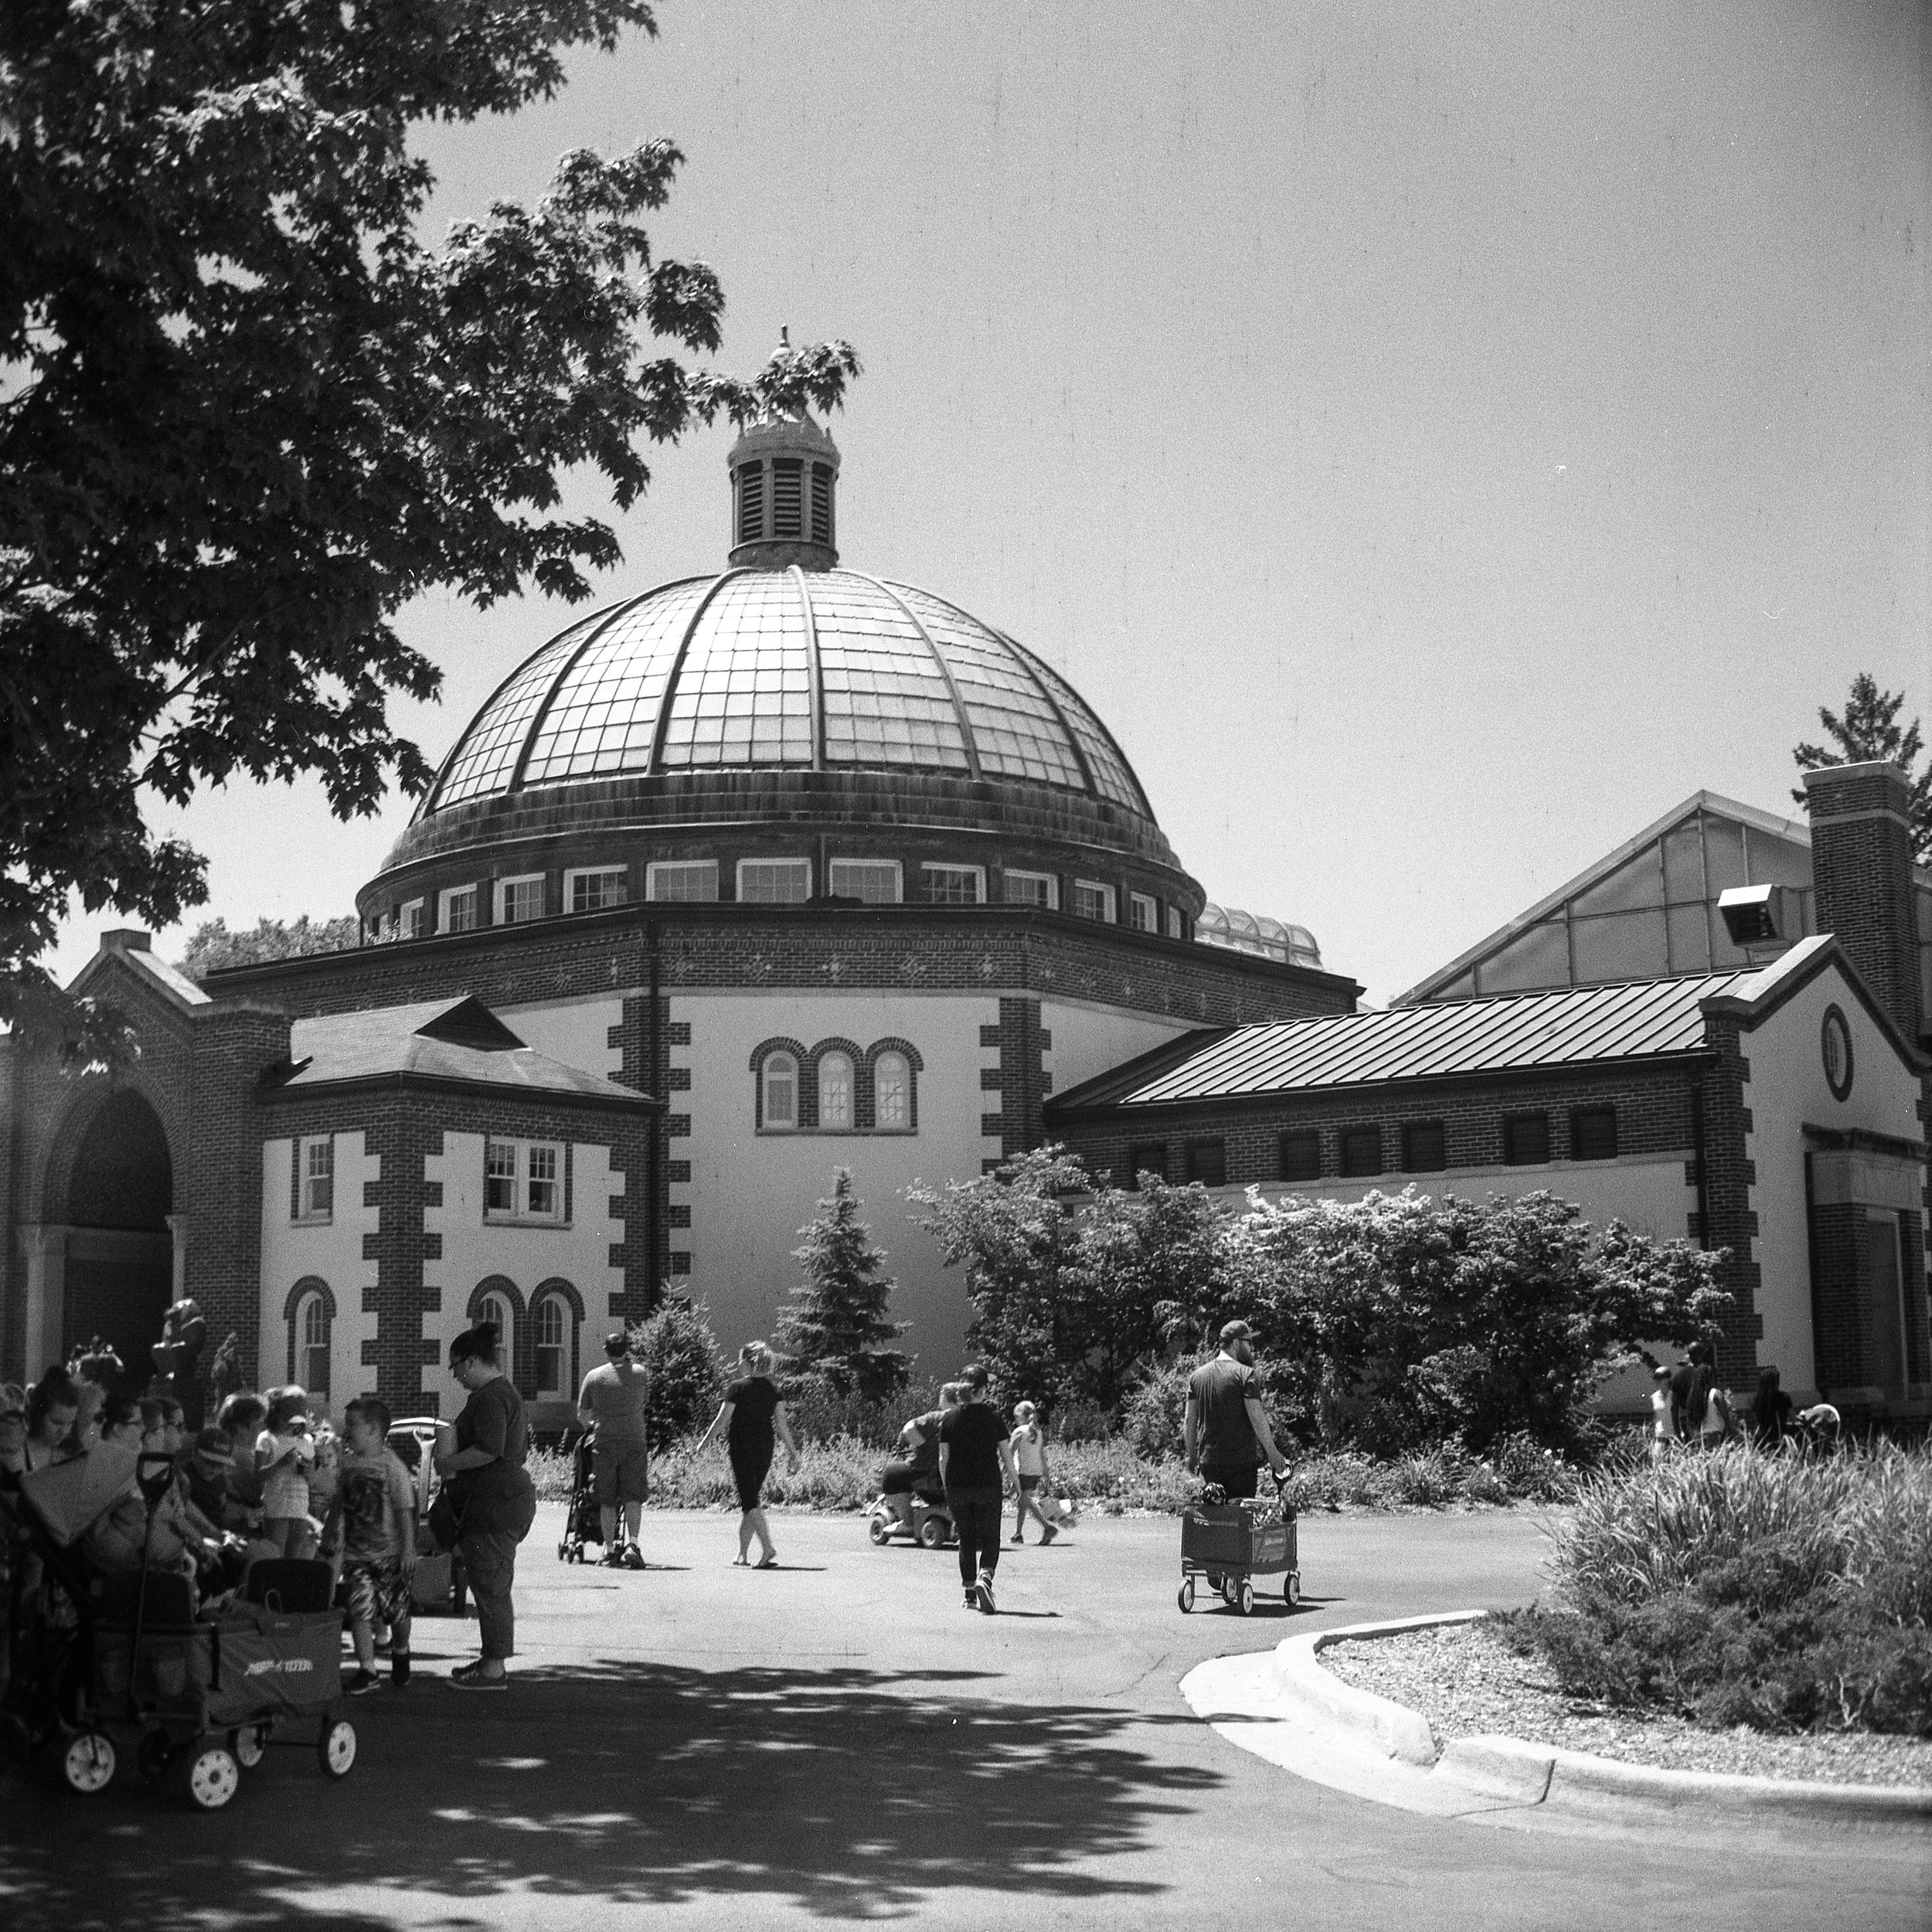 1949 Kodak Brownie Hawkeye Photo Medium Format 620 Film Zoe Kissel Photo detroit zoo